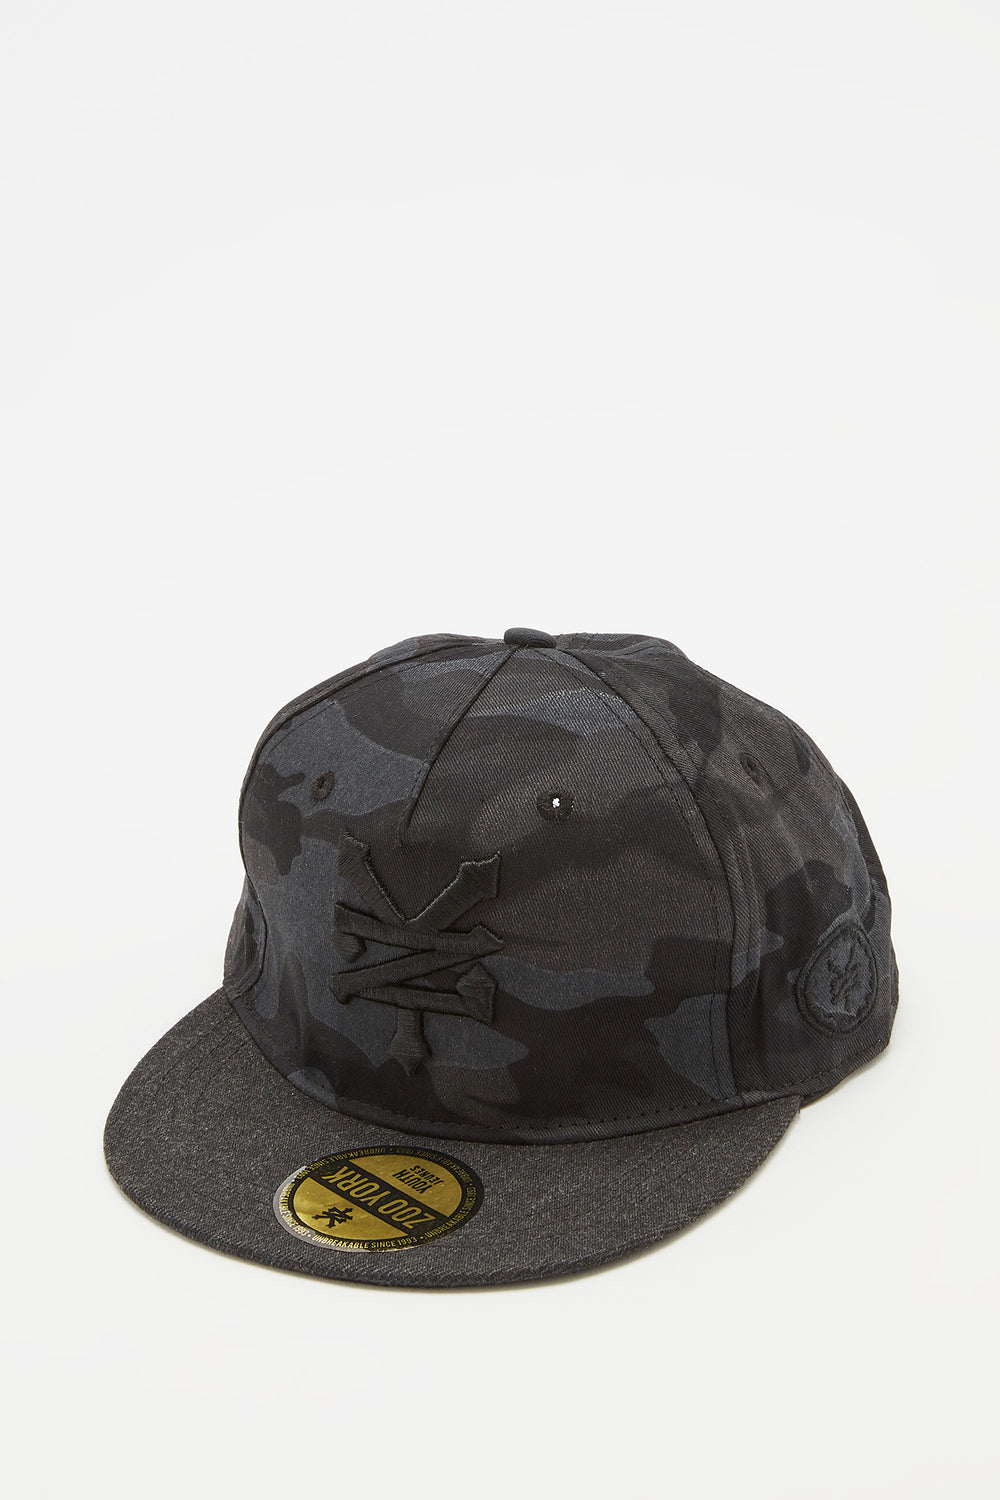 Zoo York Boys Camo Snapback Hat Black